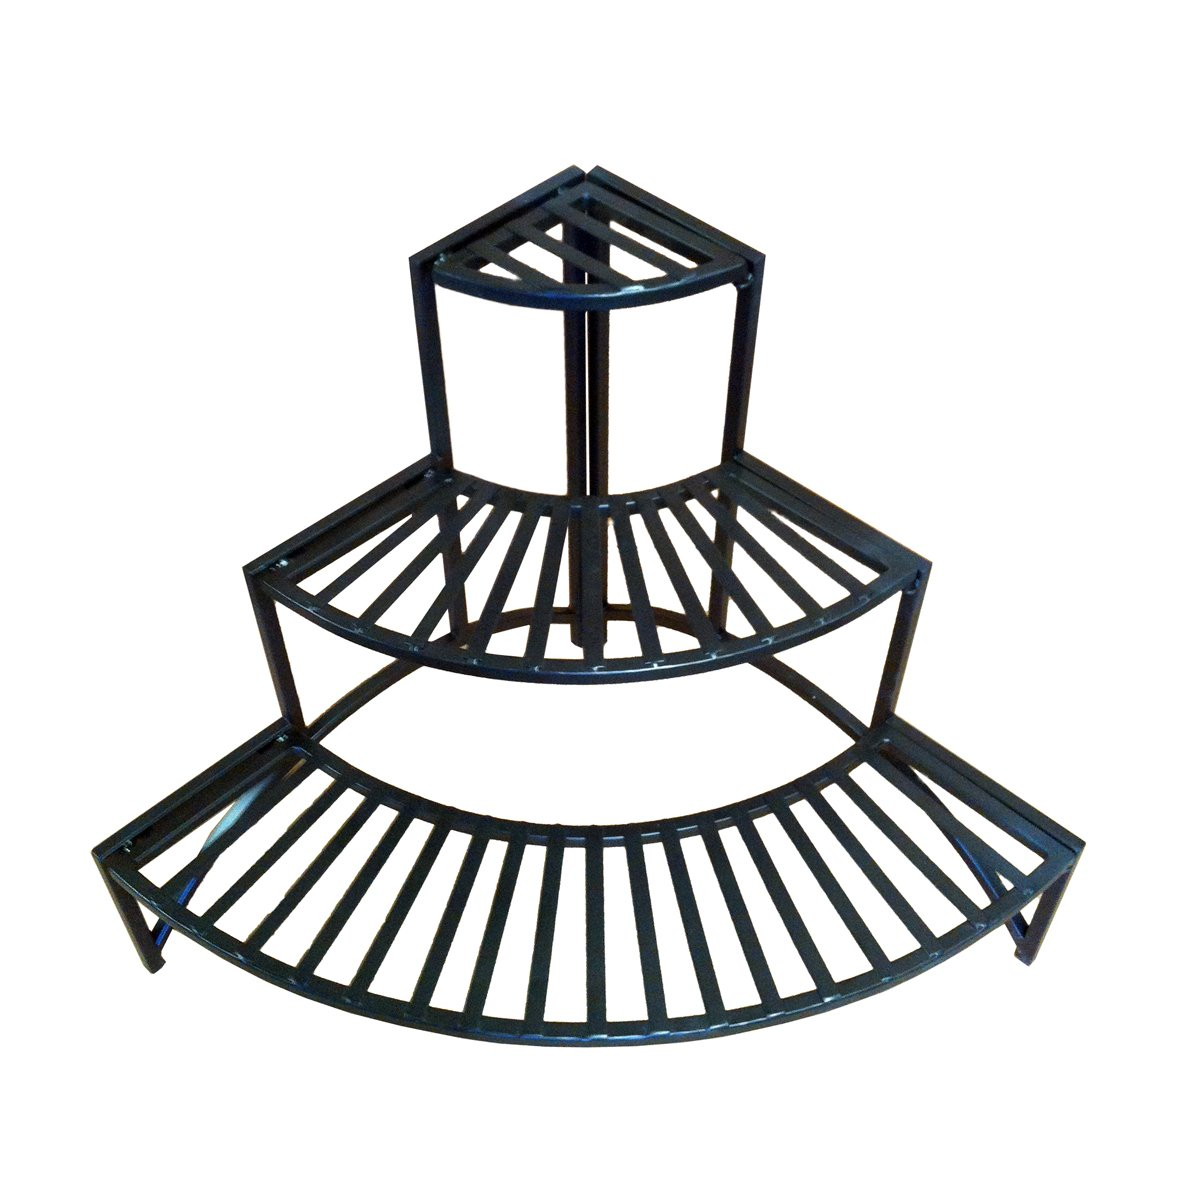 Pangaea Home and Garden Folding Corner Three Layer Iron Plant Stand by Pangaea Home and Garden